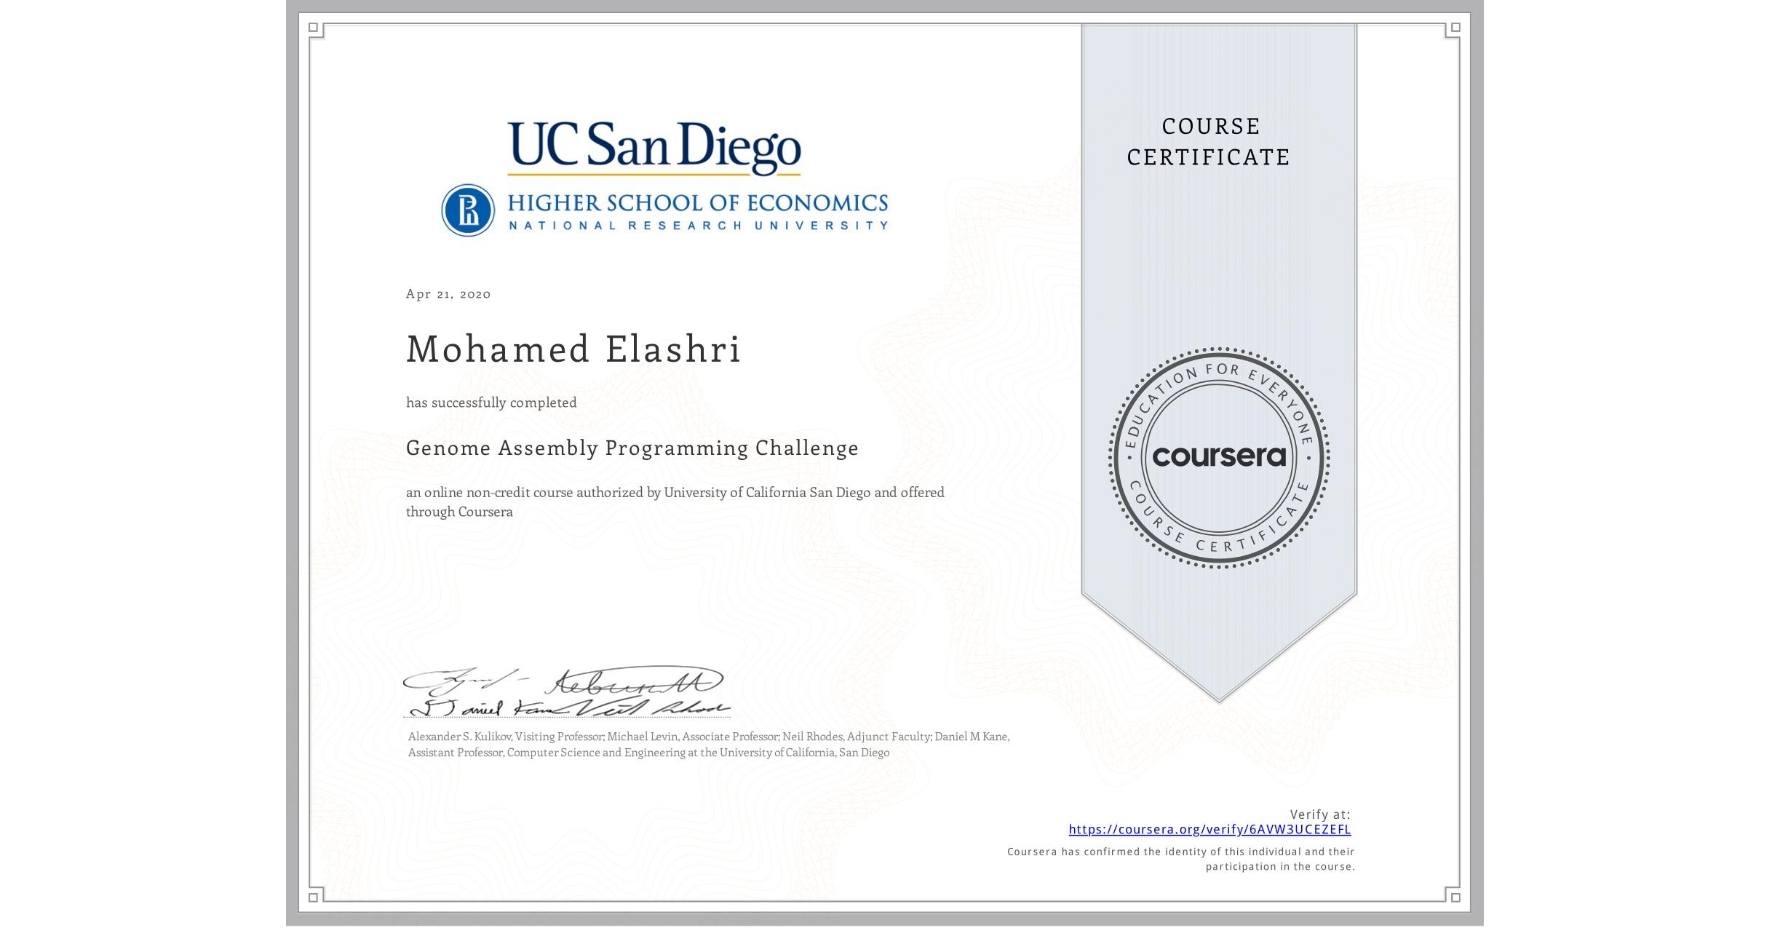 View certificate for Mohamed Elashri, Genome Assembly Programming Challenge, an online non-credit course authorized by University of California San Diego & National Research University Higher School of Economics and offered through Coursera